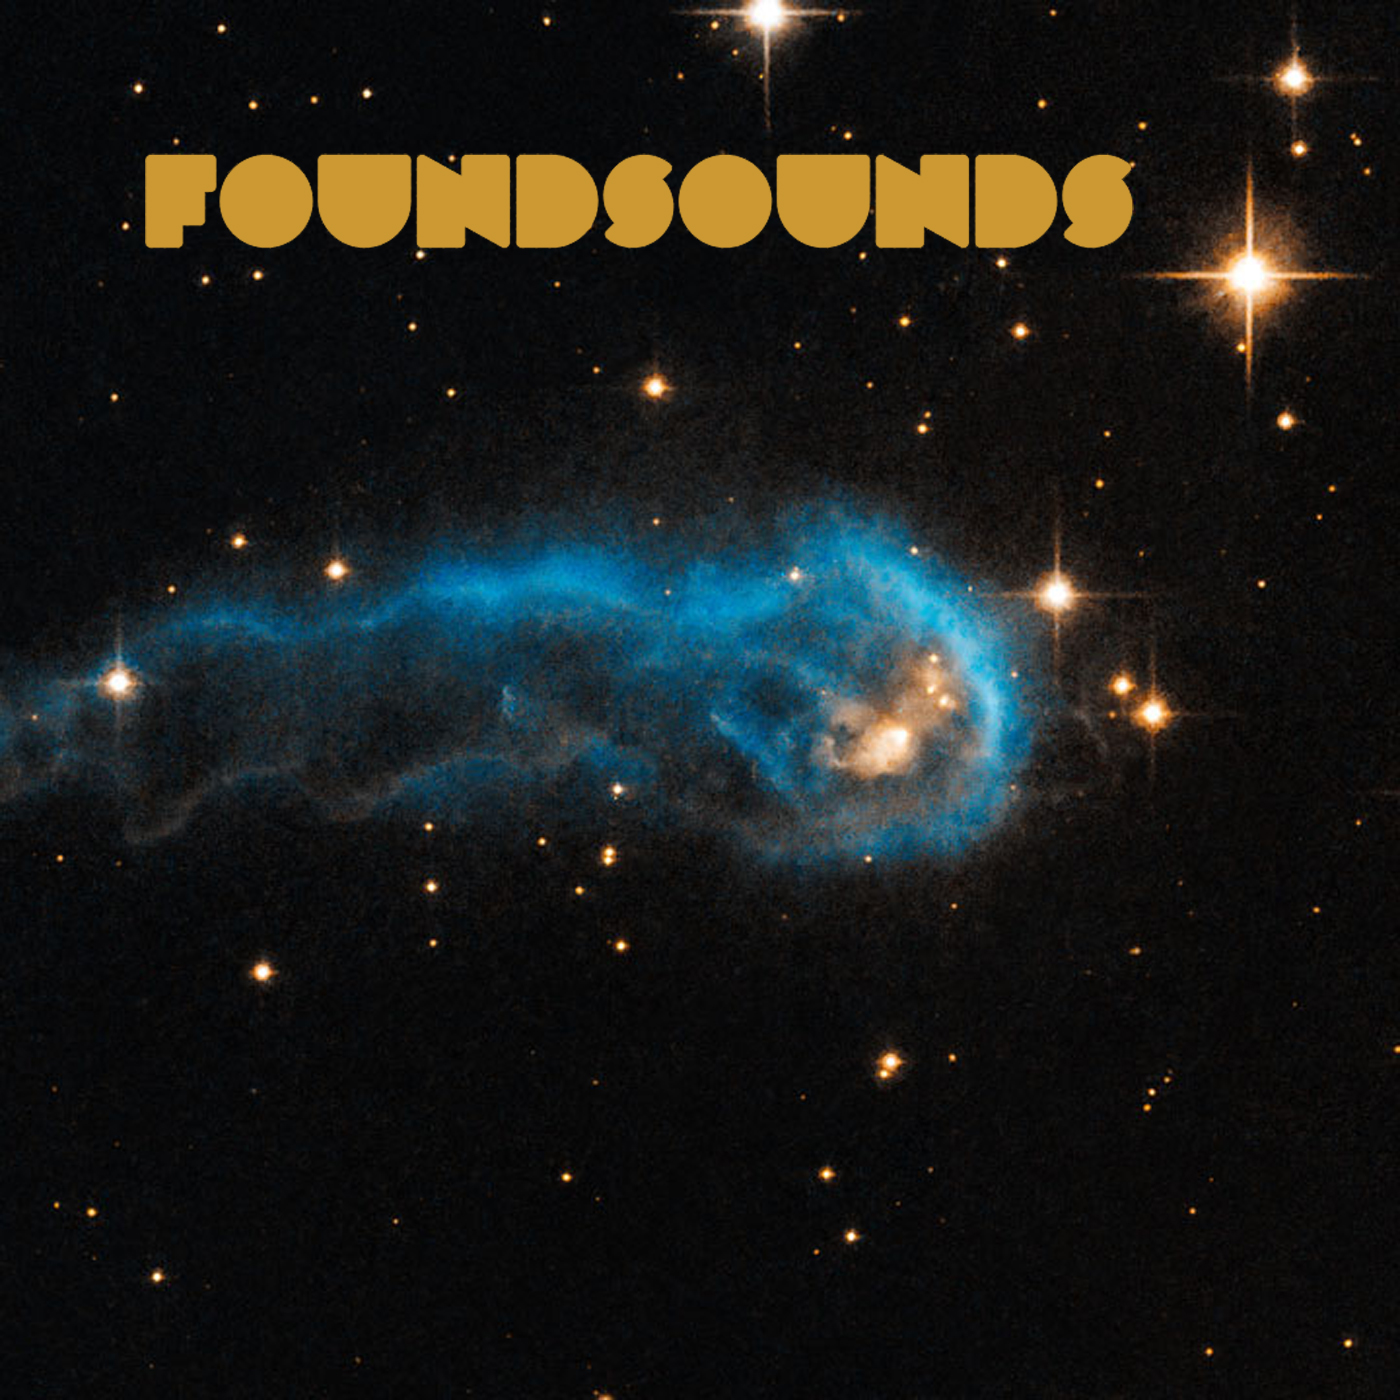 FoundSounds